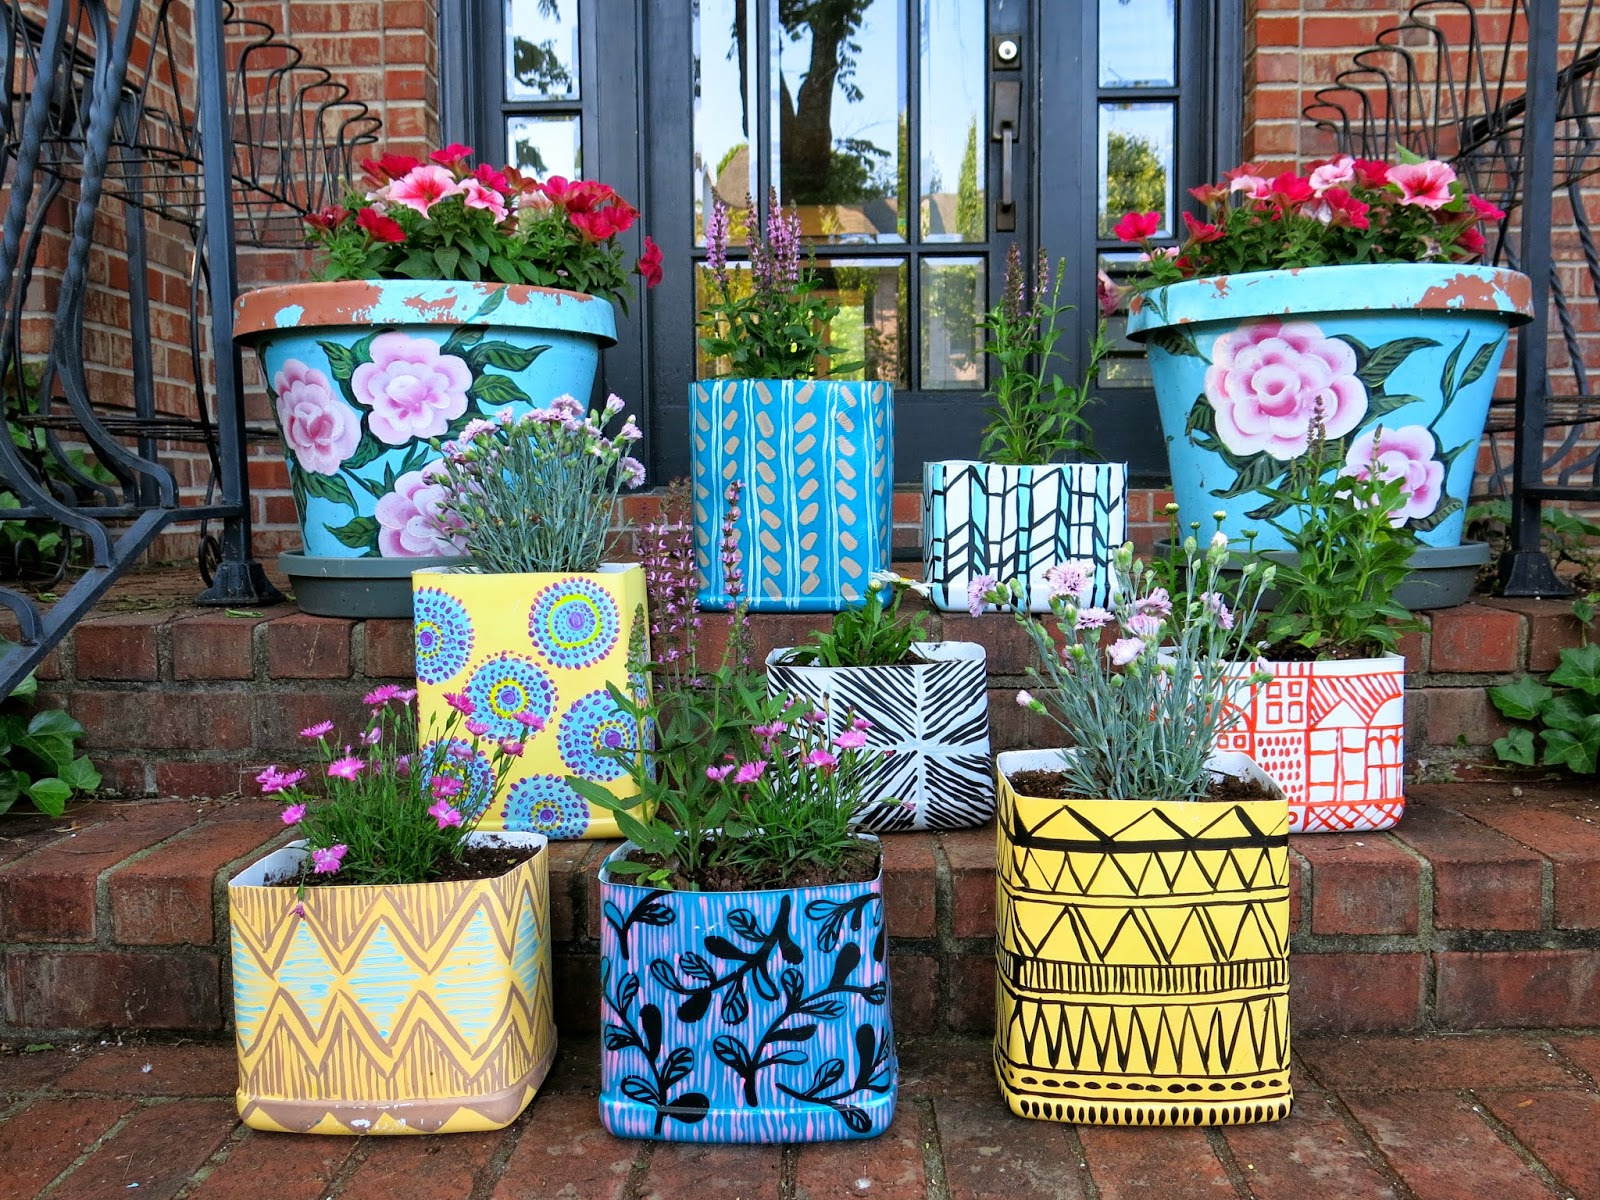 hand geraniums scalloped and concrete edging half water white pink pump antique ideas planter barrel planters painted with pansies yellow garden